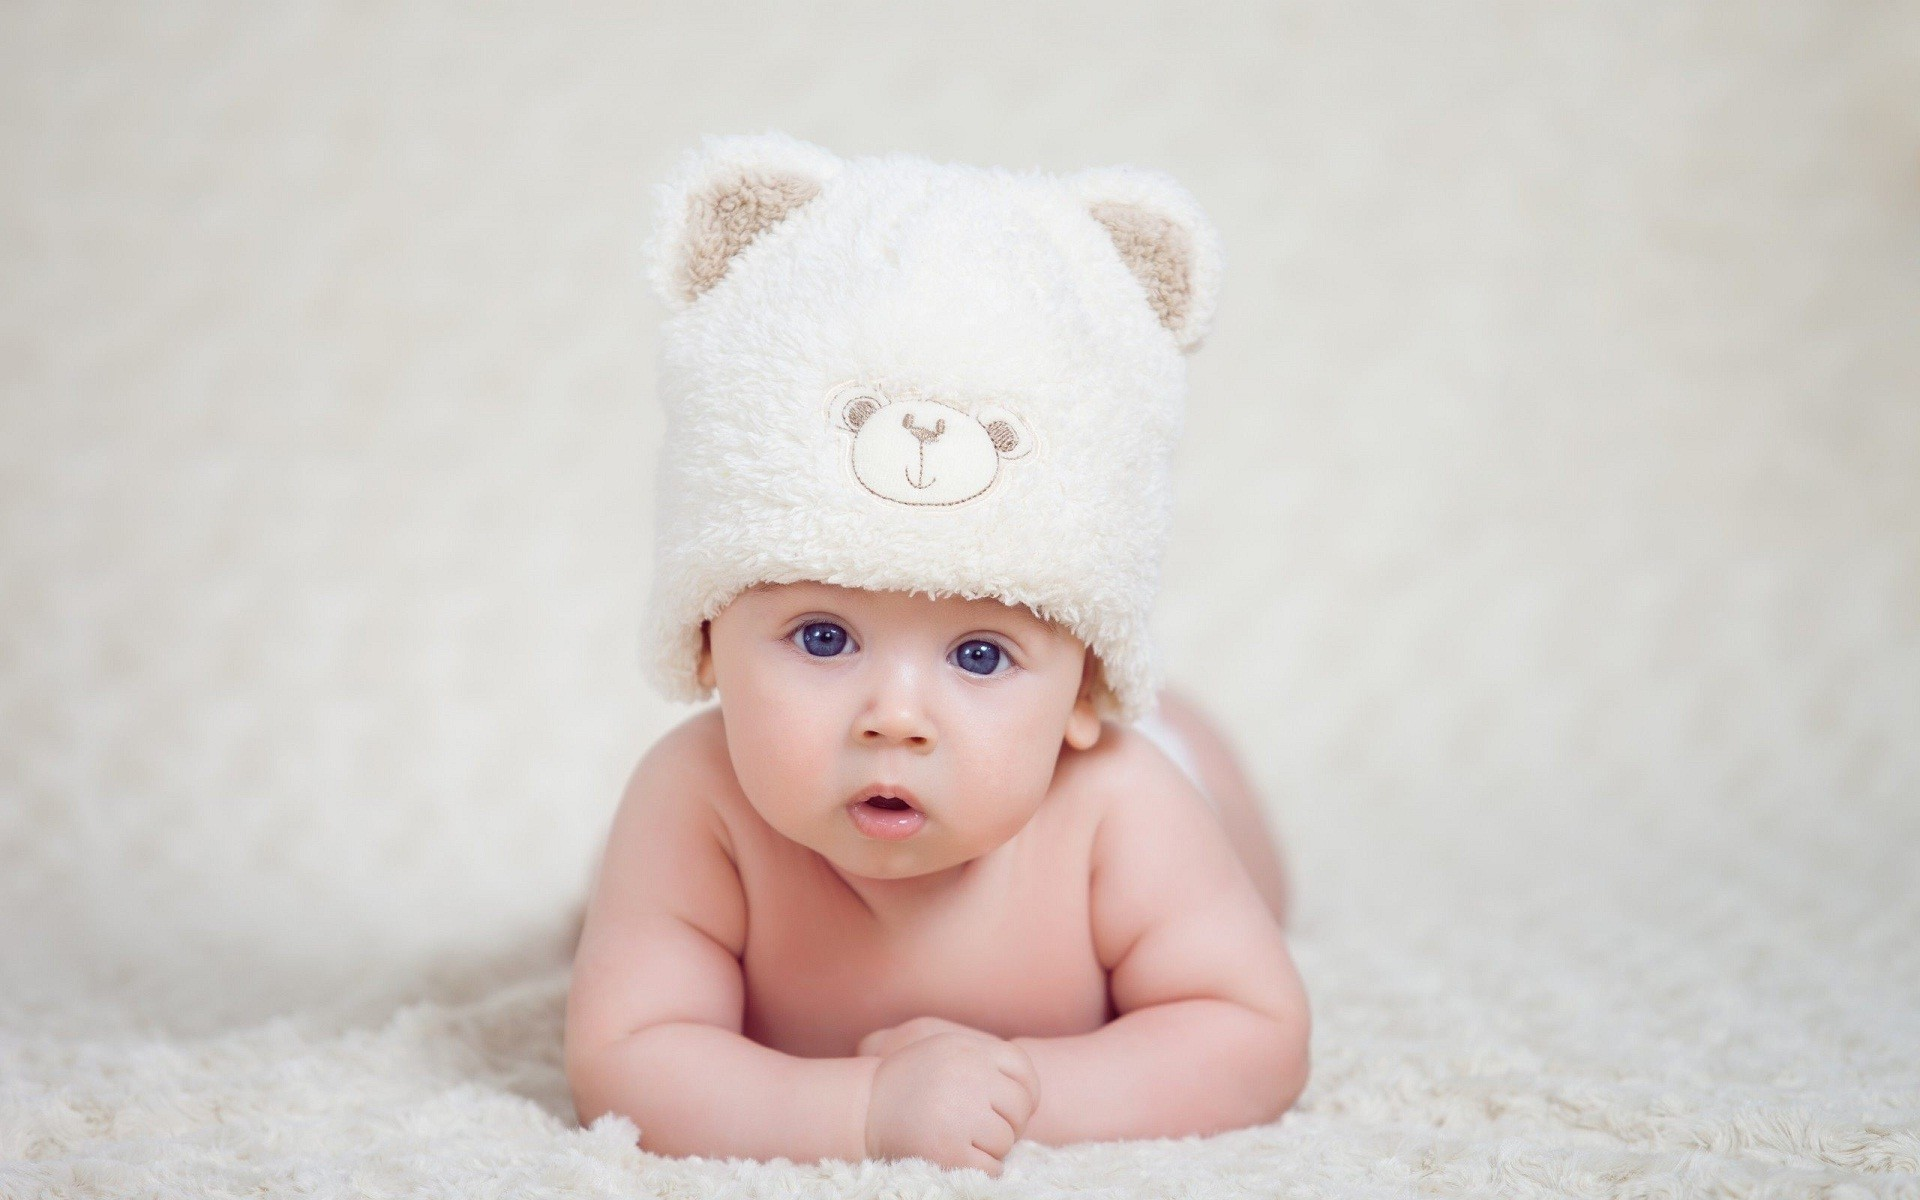 Res: 1920x1200, New Born My Cute Baby Hd Photos Just Wallpaper Of Smartphone High Resolution